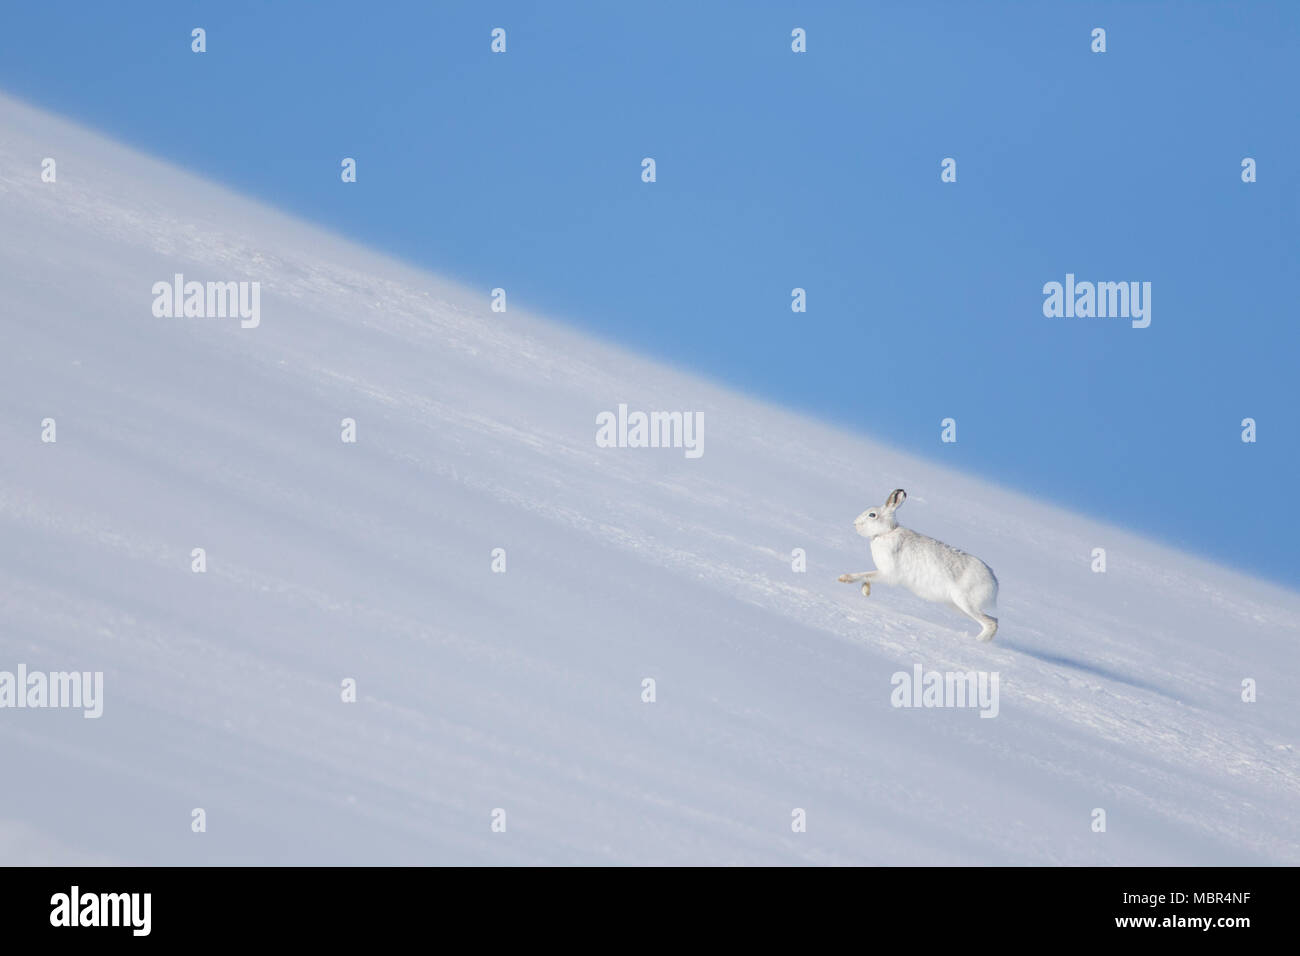 Mountain hare / Alpine hare / snow hare (Lepus timidus) in winter pelage running in the snow uphill - Stock Image